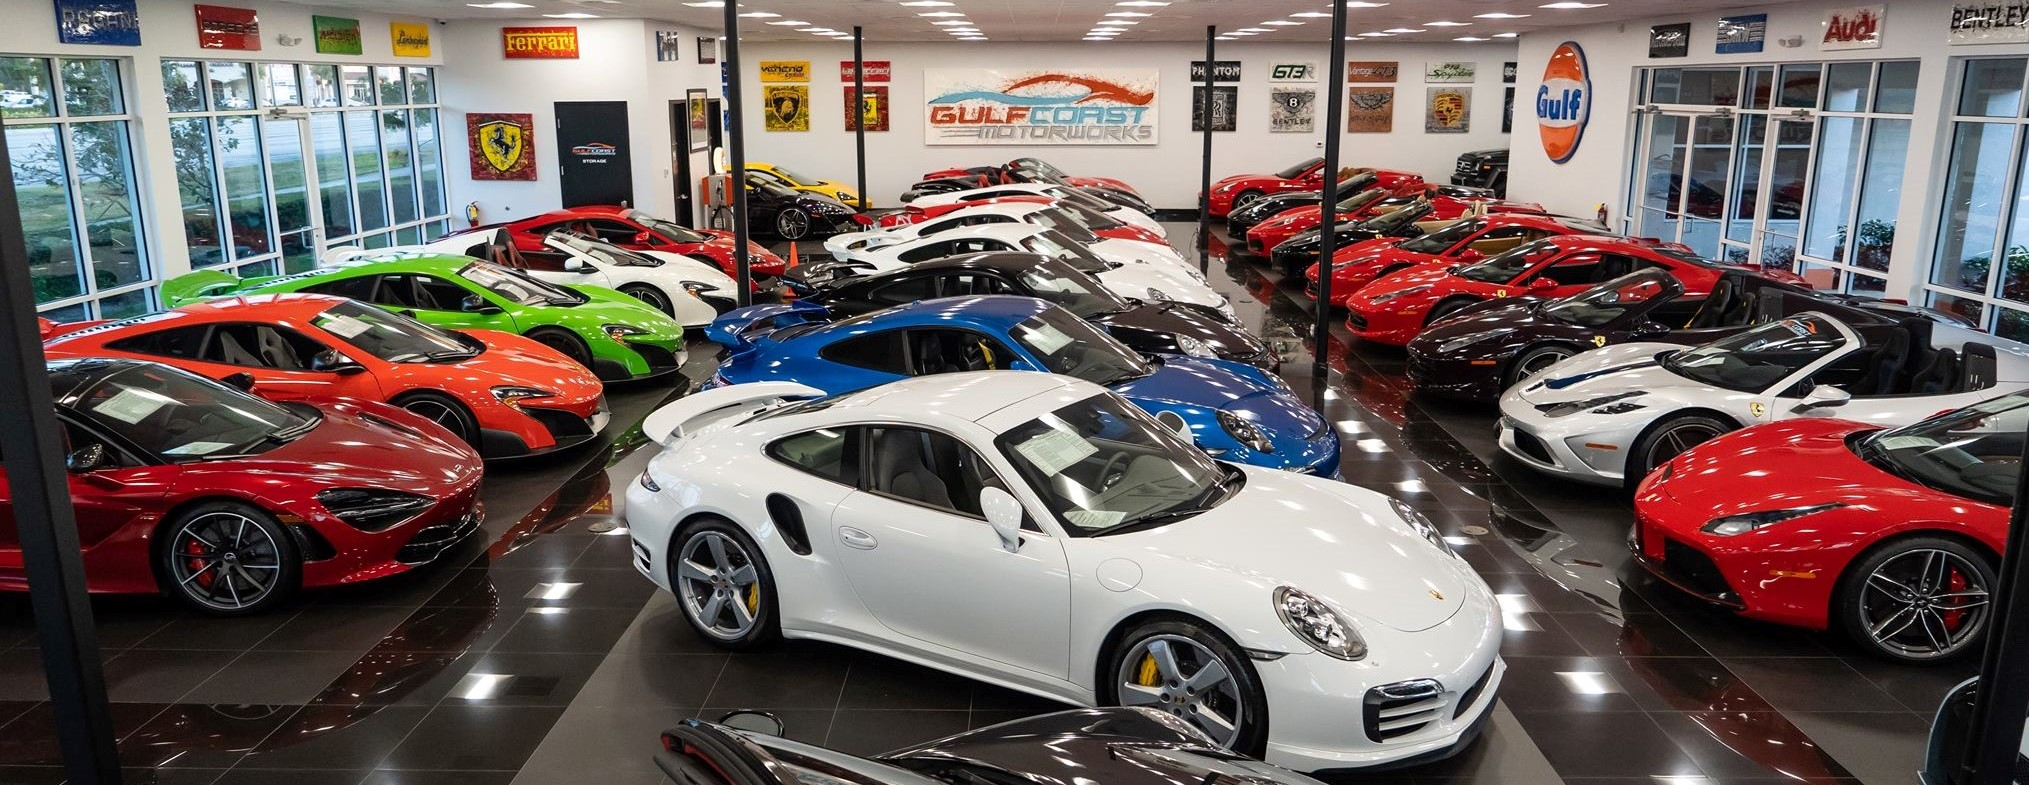 Exotic Car Dealership Sports Cars For Sale Gulf Coast Motorworks